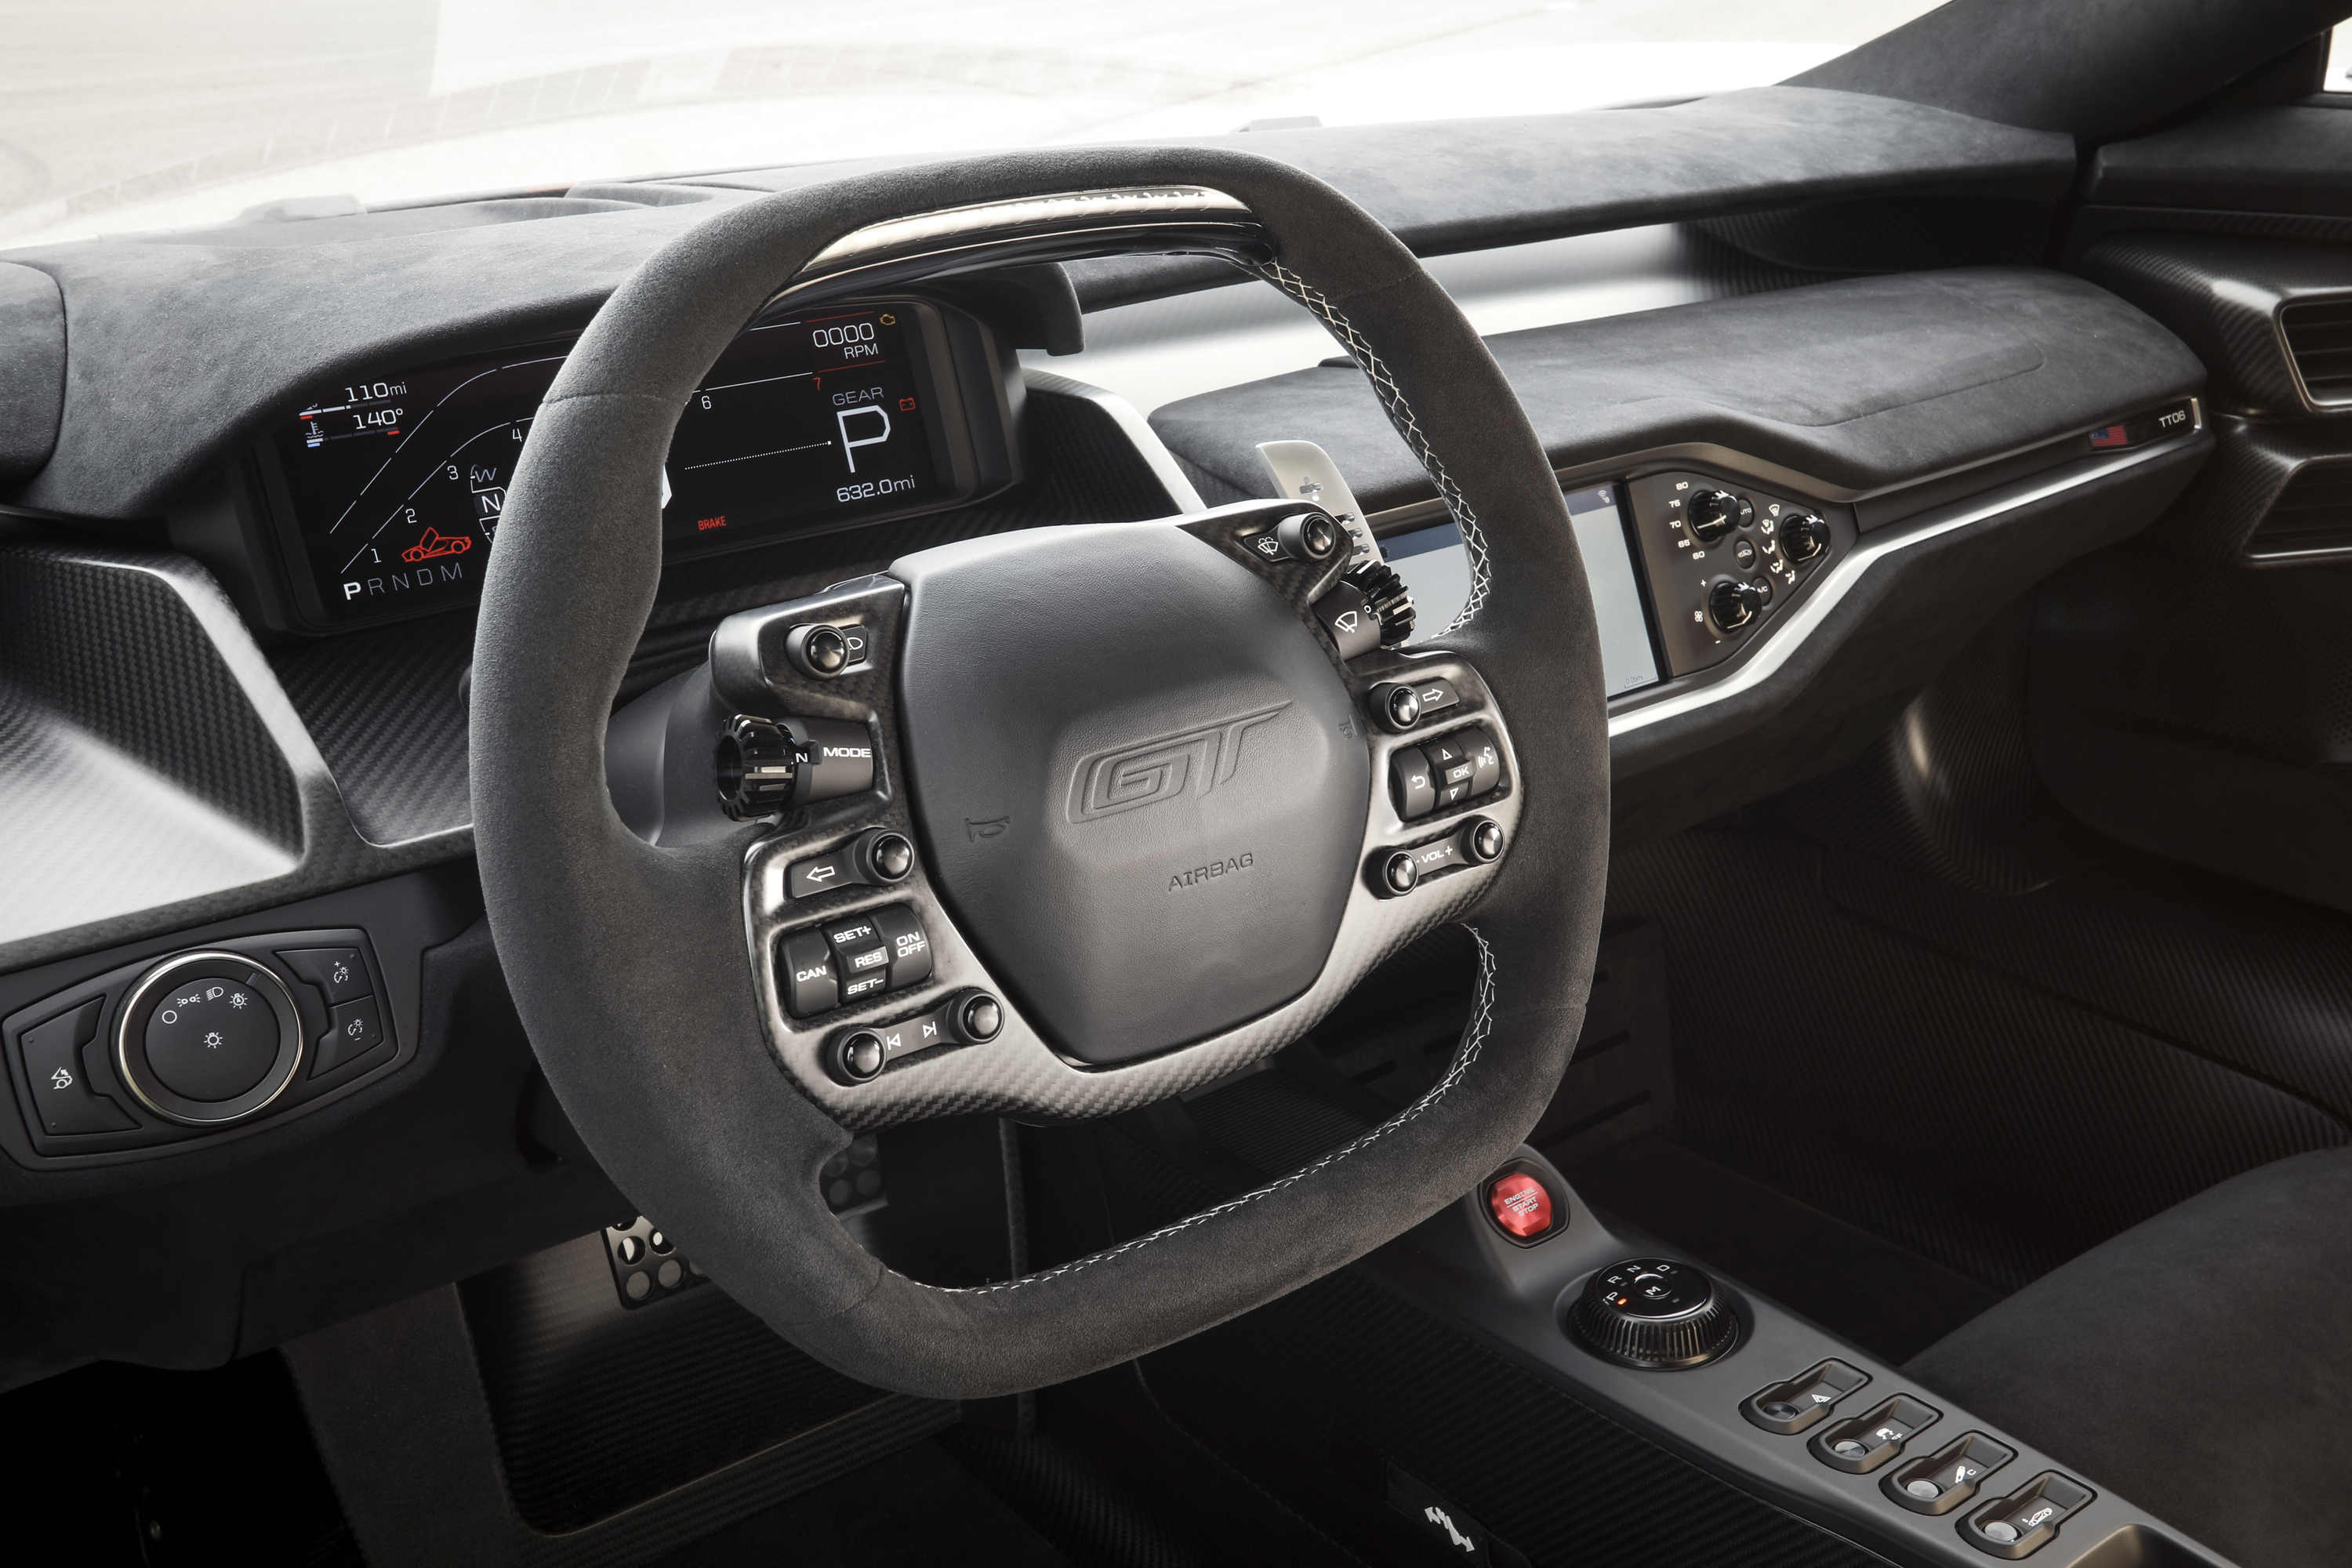 Ford GT Carbon Series Leadfoot Steering Wheel